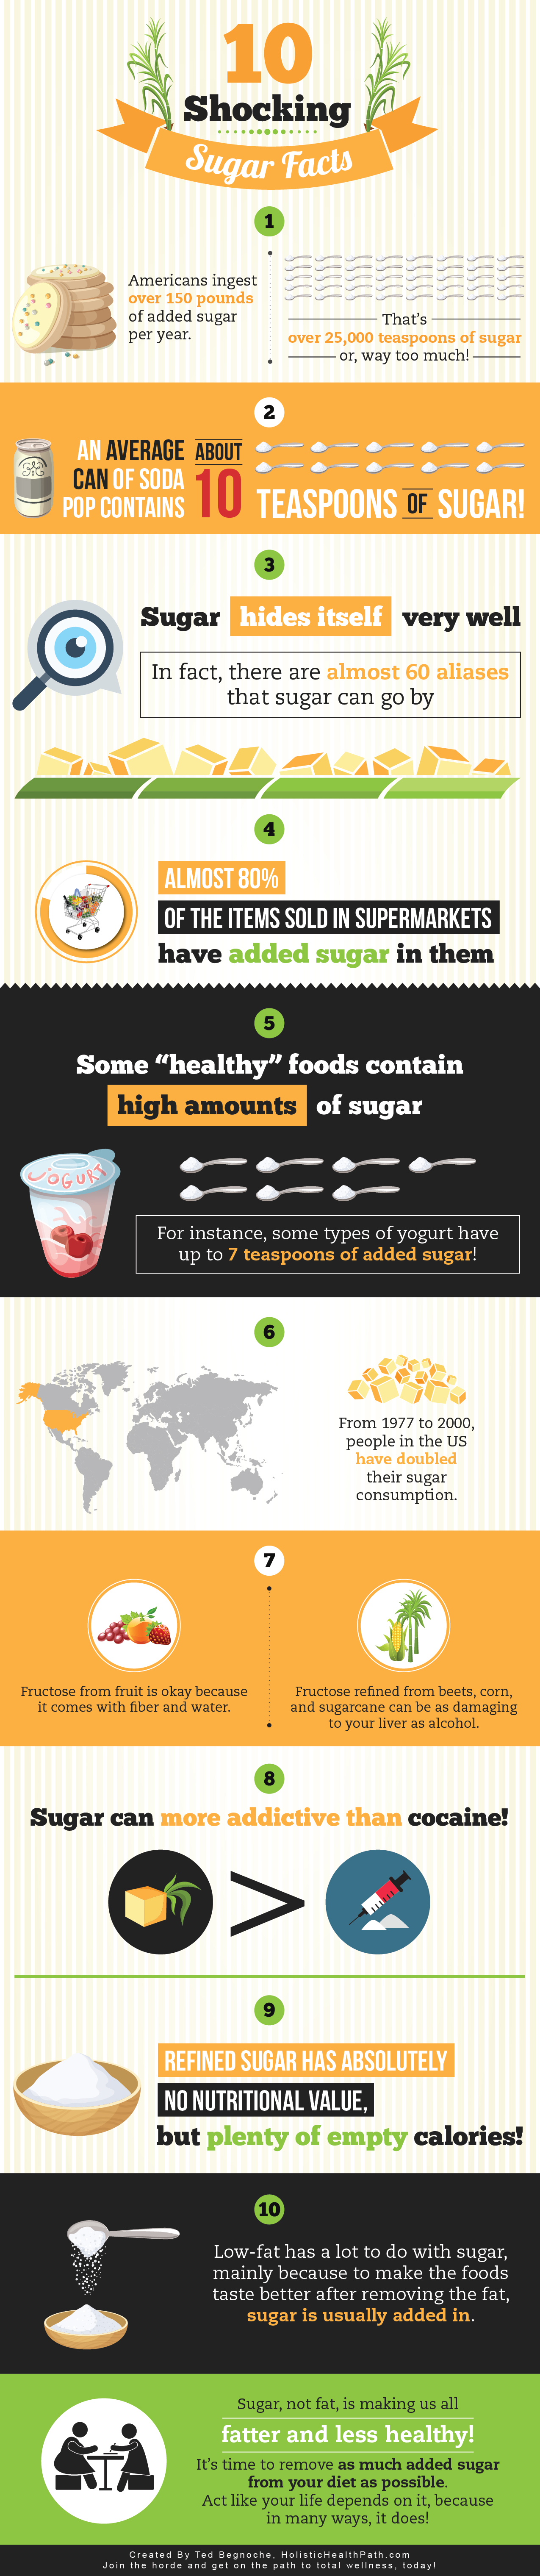 10 Shocking Sugar Facts